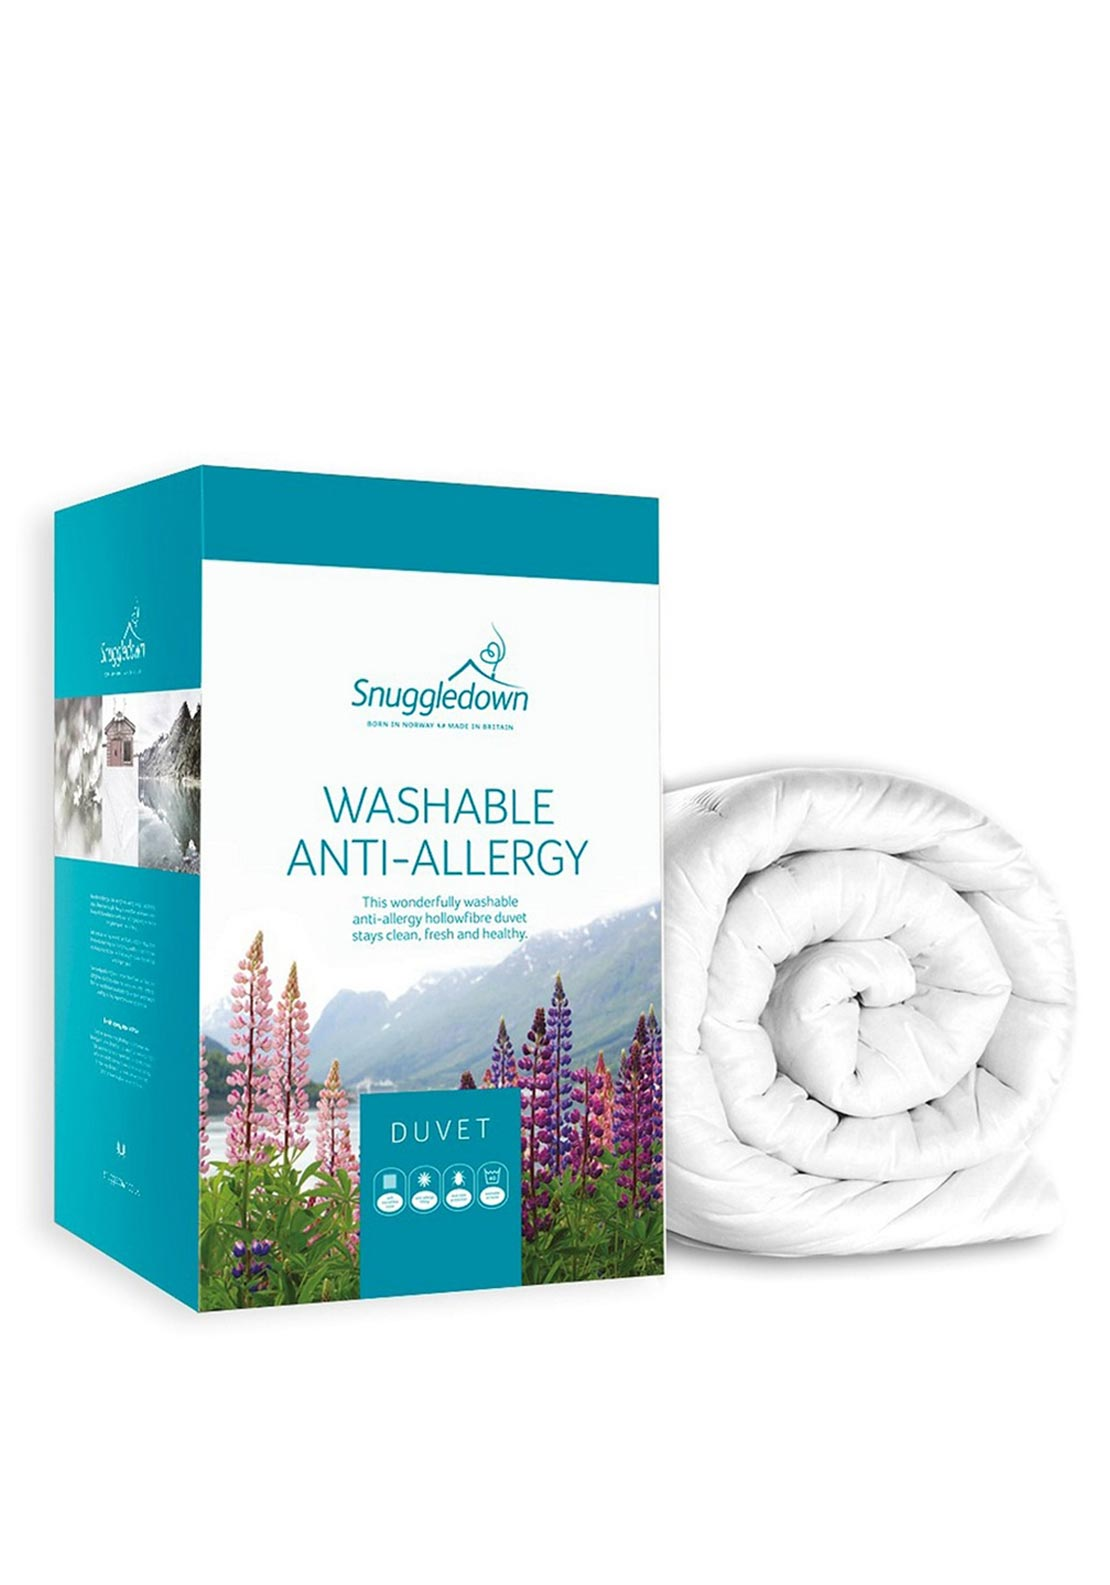 Snuggledown Washable Anti-Allergy Duvet, 10.5 Tog